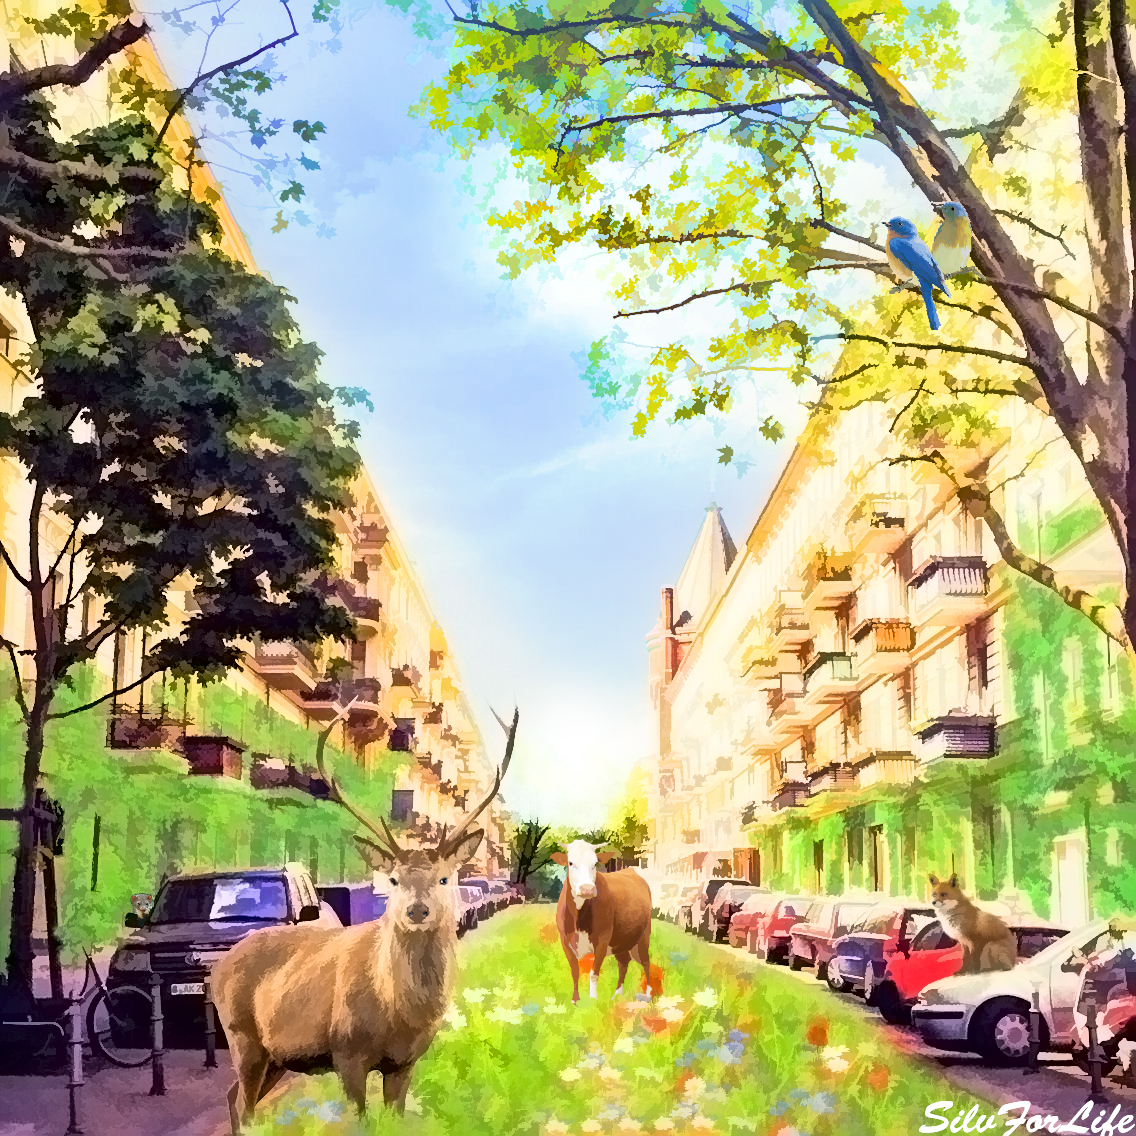 Surreal Nature in City - Photomanipulation Painting